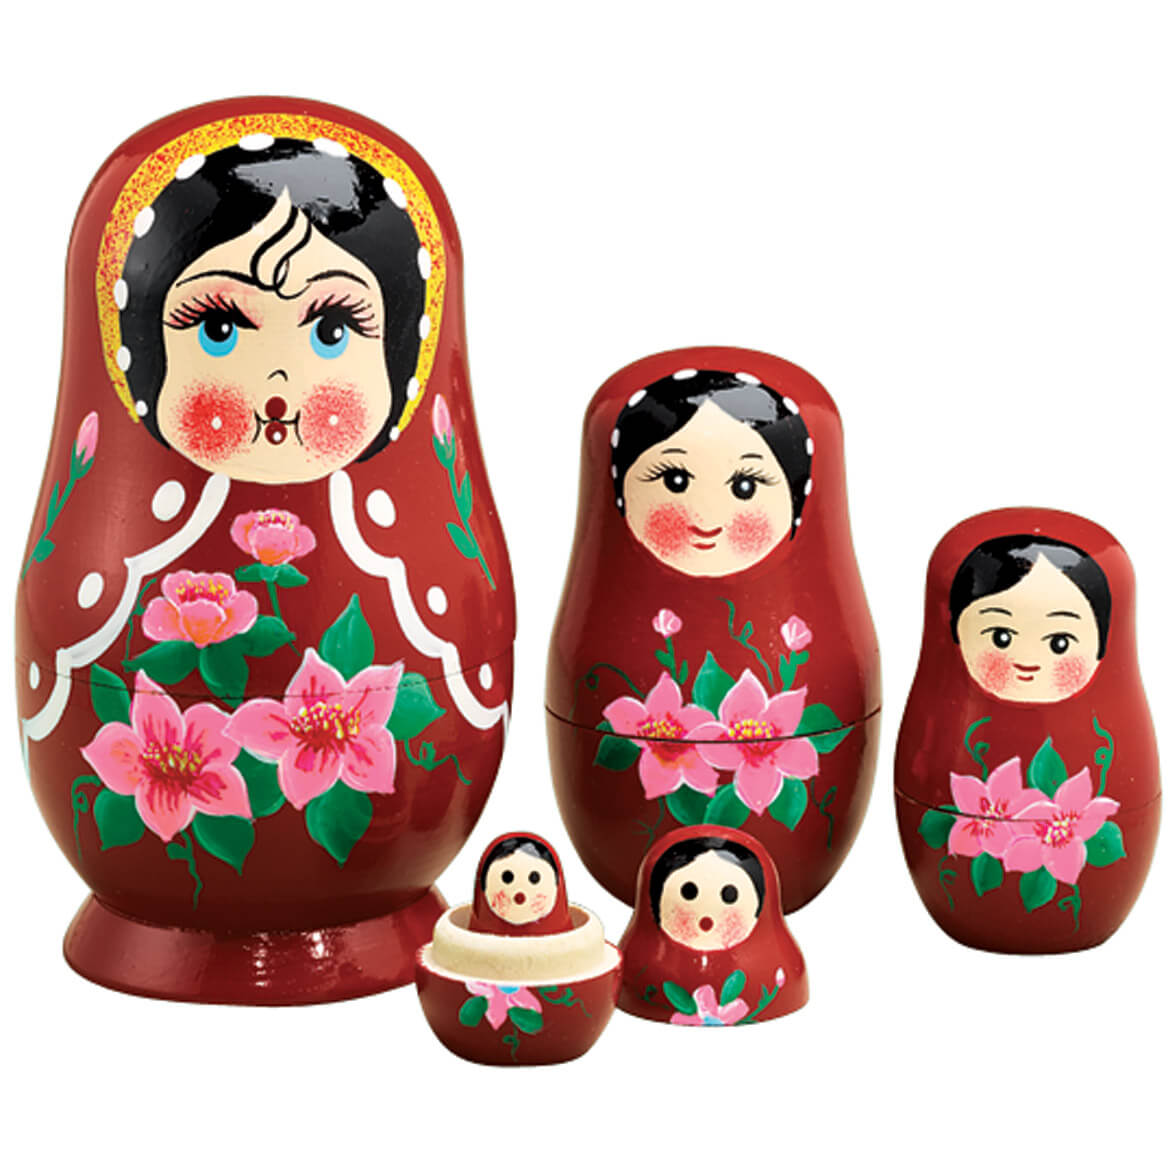 Santa Nesting Dolls Nostalgic Christmas Crafted in Solid Wood Set of 5 Holiday